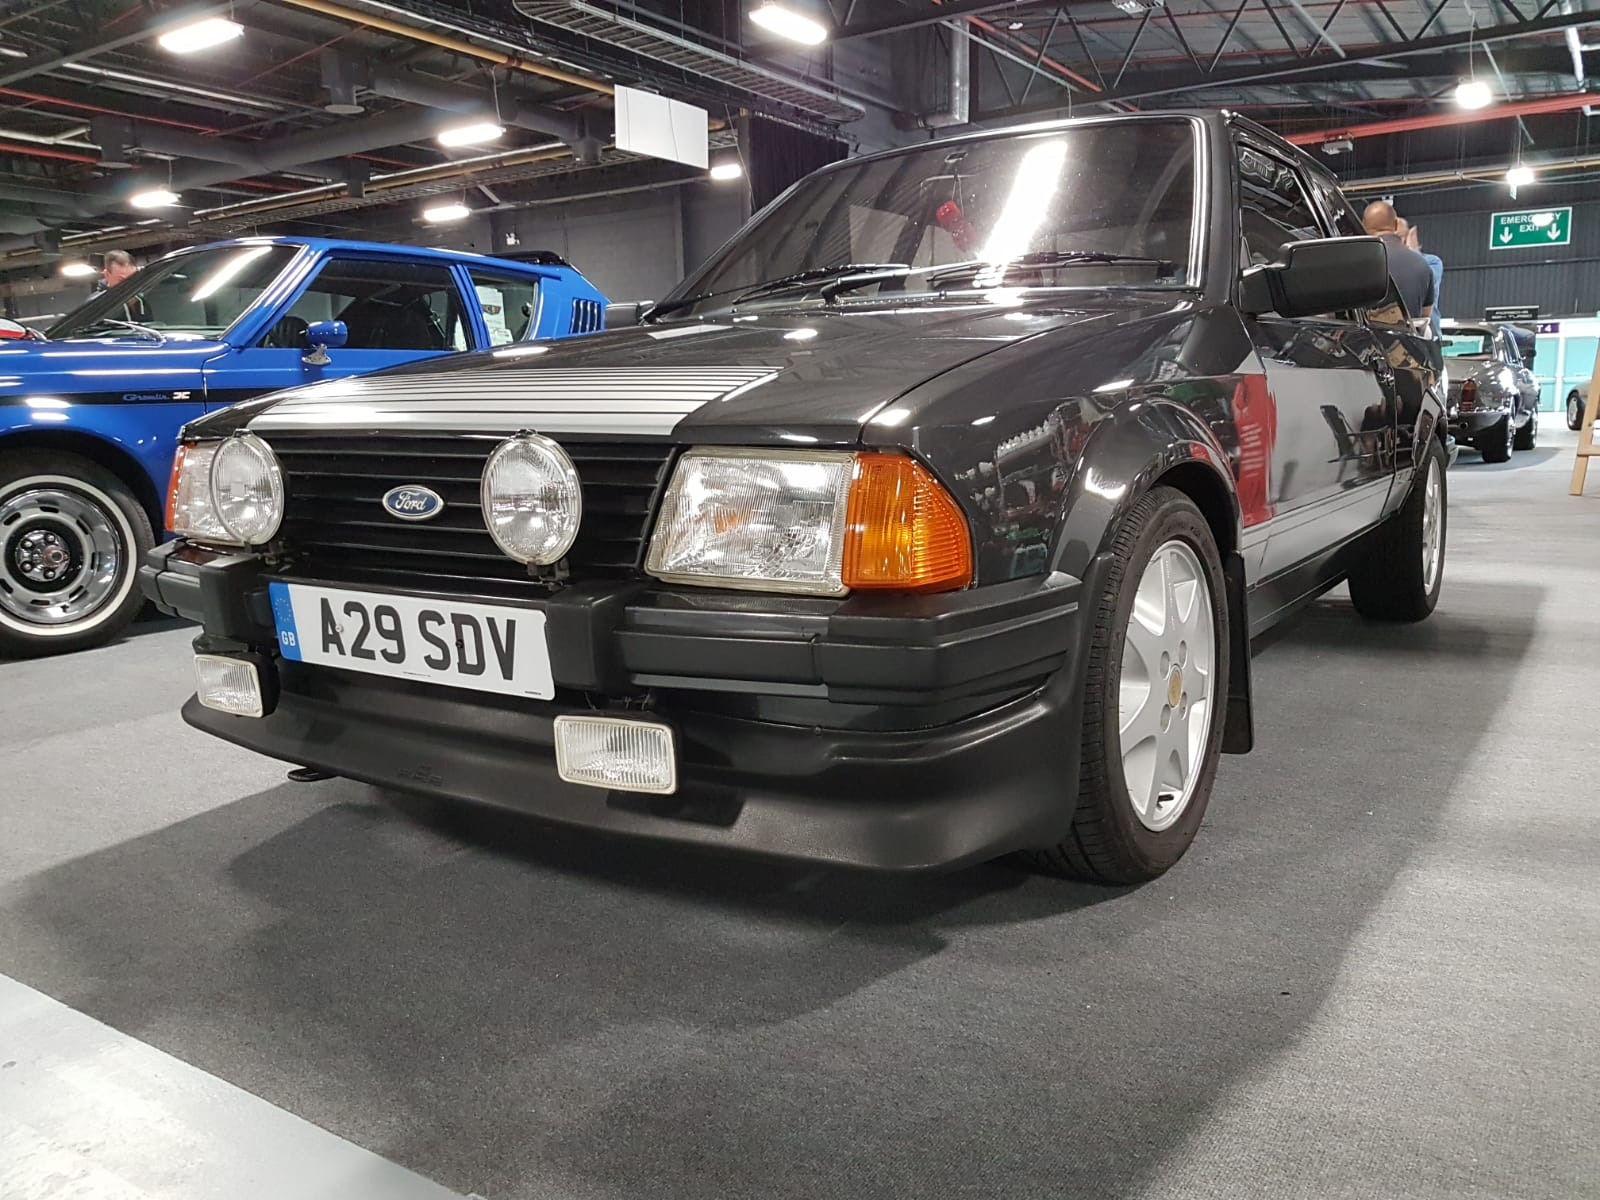 Ford Escort RS 1600 I